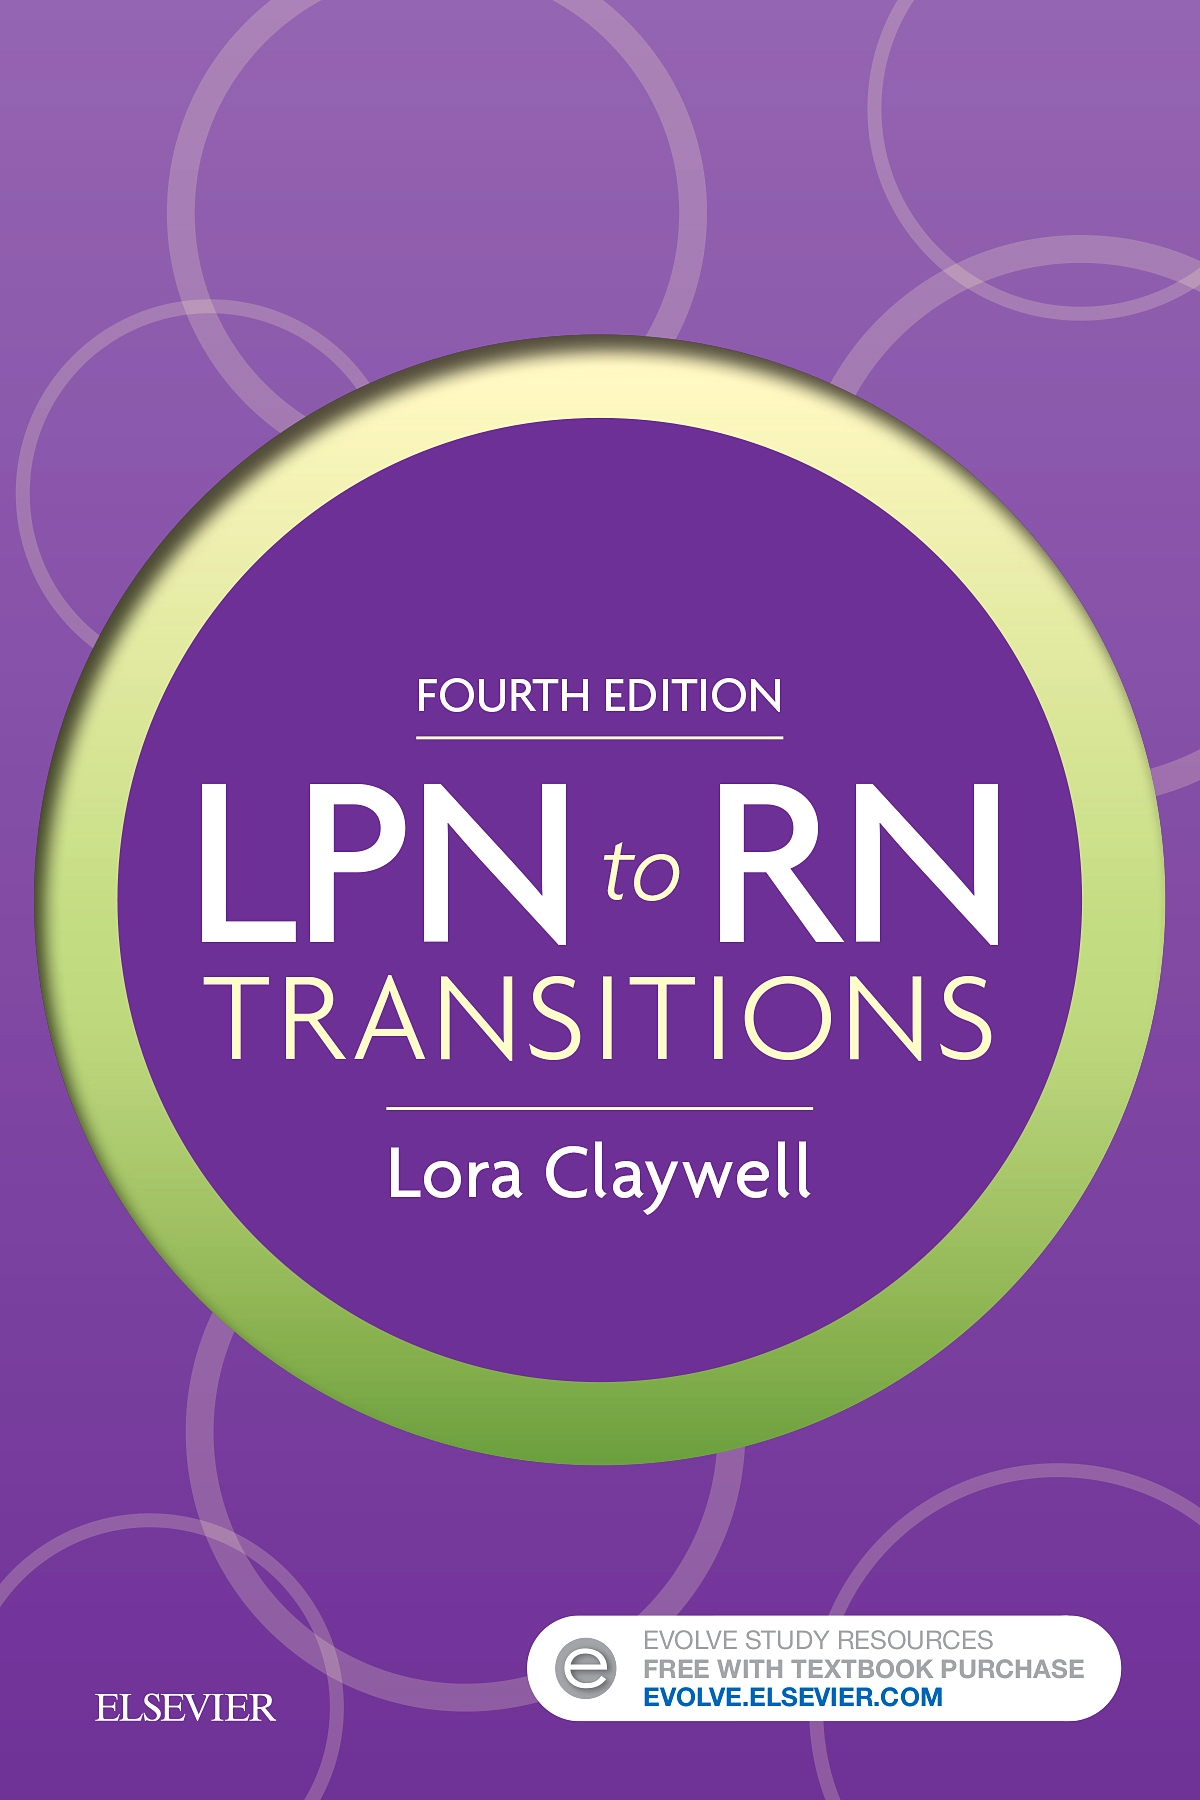 Evolve Resources for LPN to RN Transitions, 4th Edition